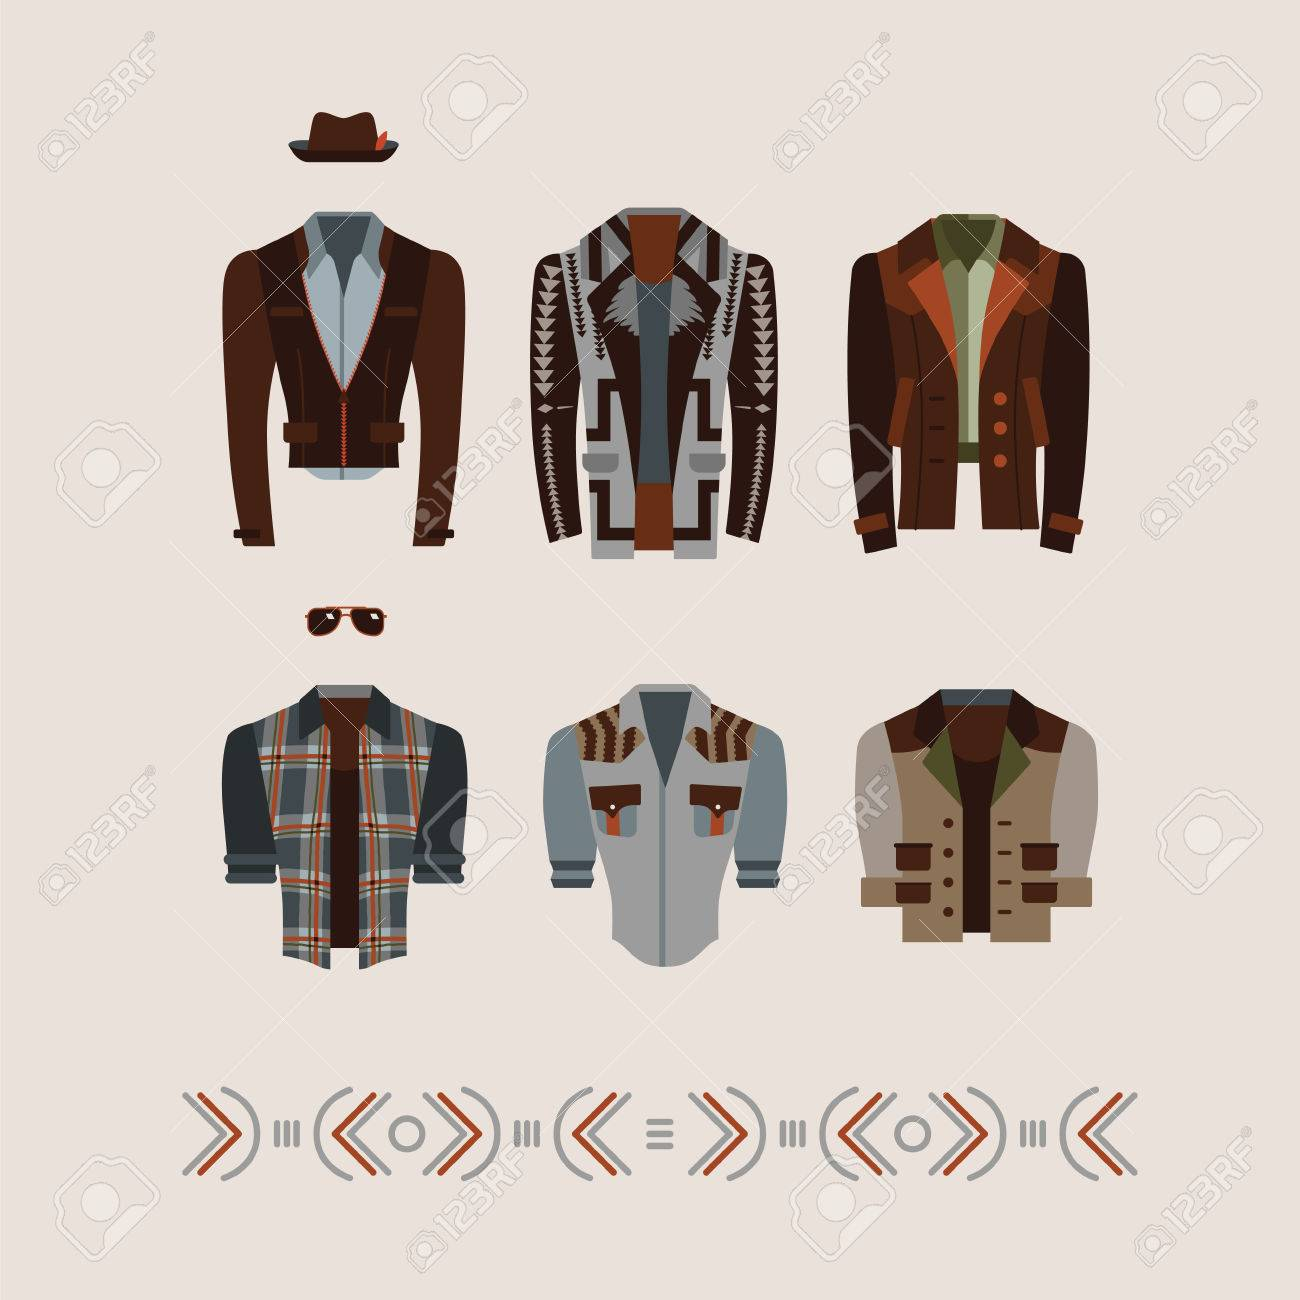 men's modern and retro clothes fashion illustration